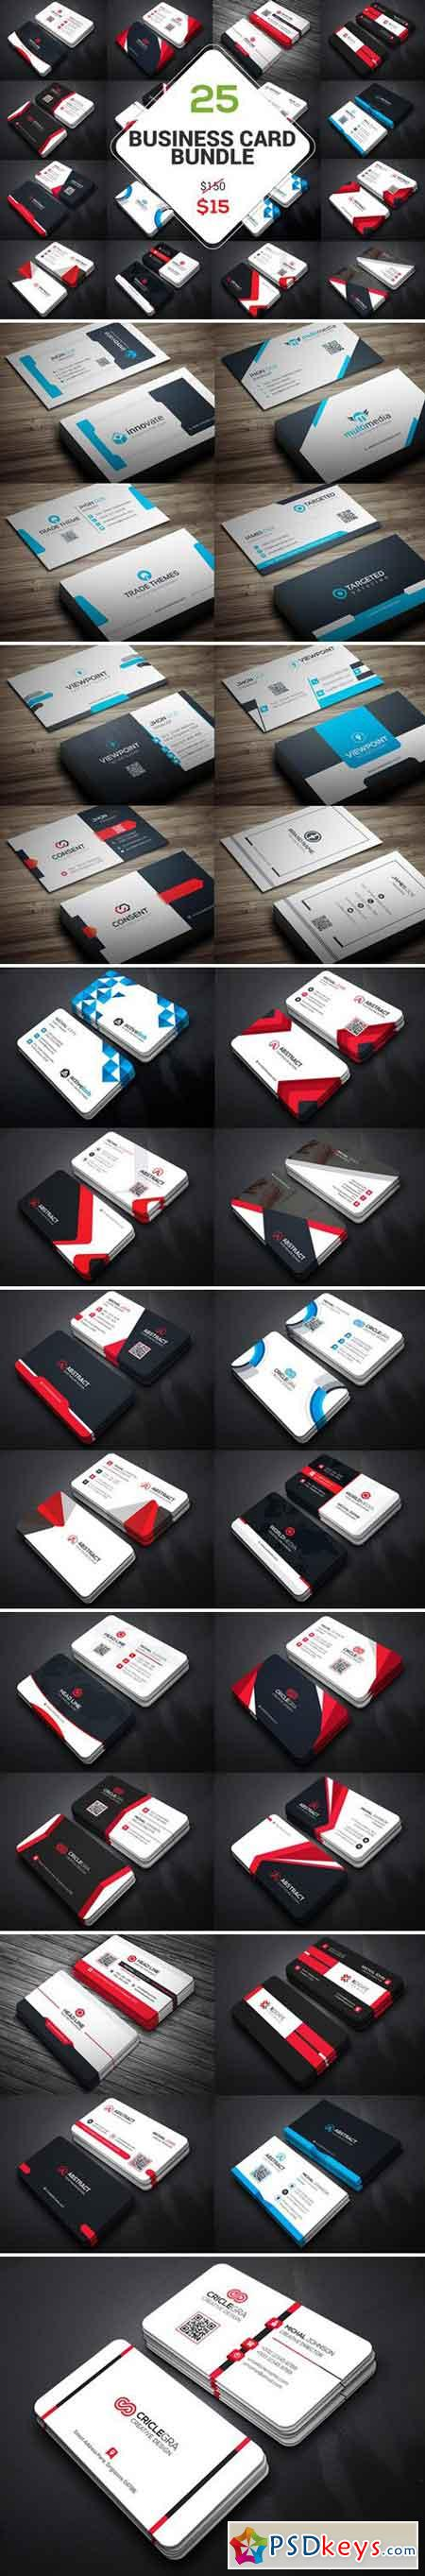 25 Business Card Bundle 2119501 » Free Download Photoshop Vector ...